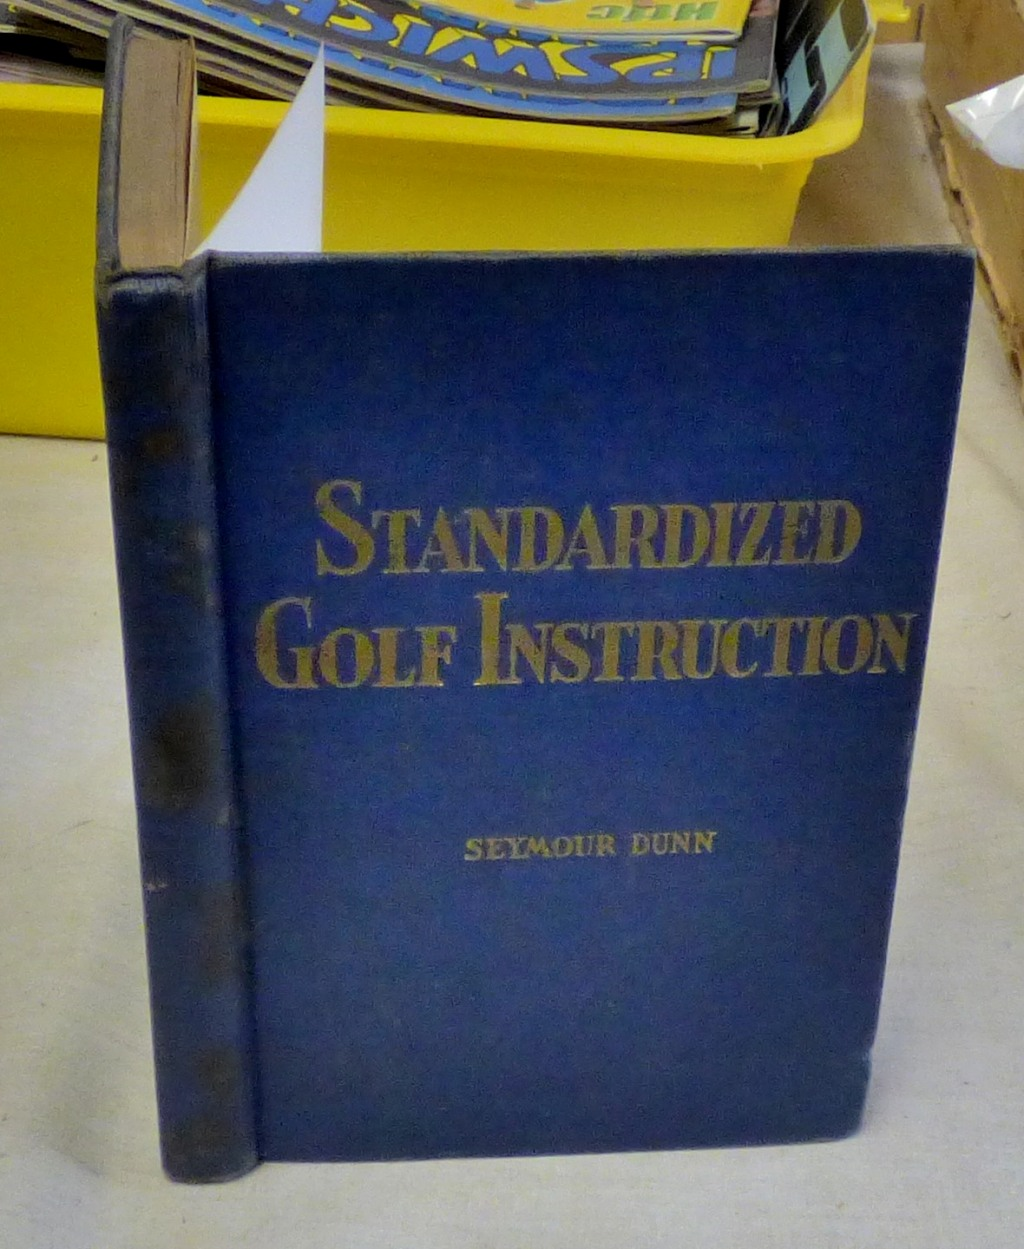 Lot 50 - Standardized Golf Instruction, Seymour Dunn, 1934, hardback, excellent condition.